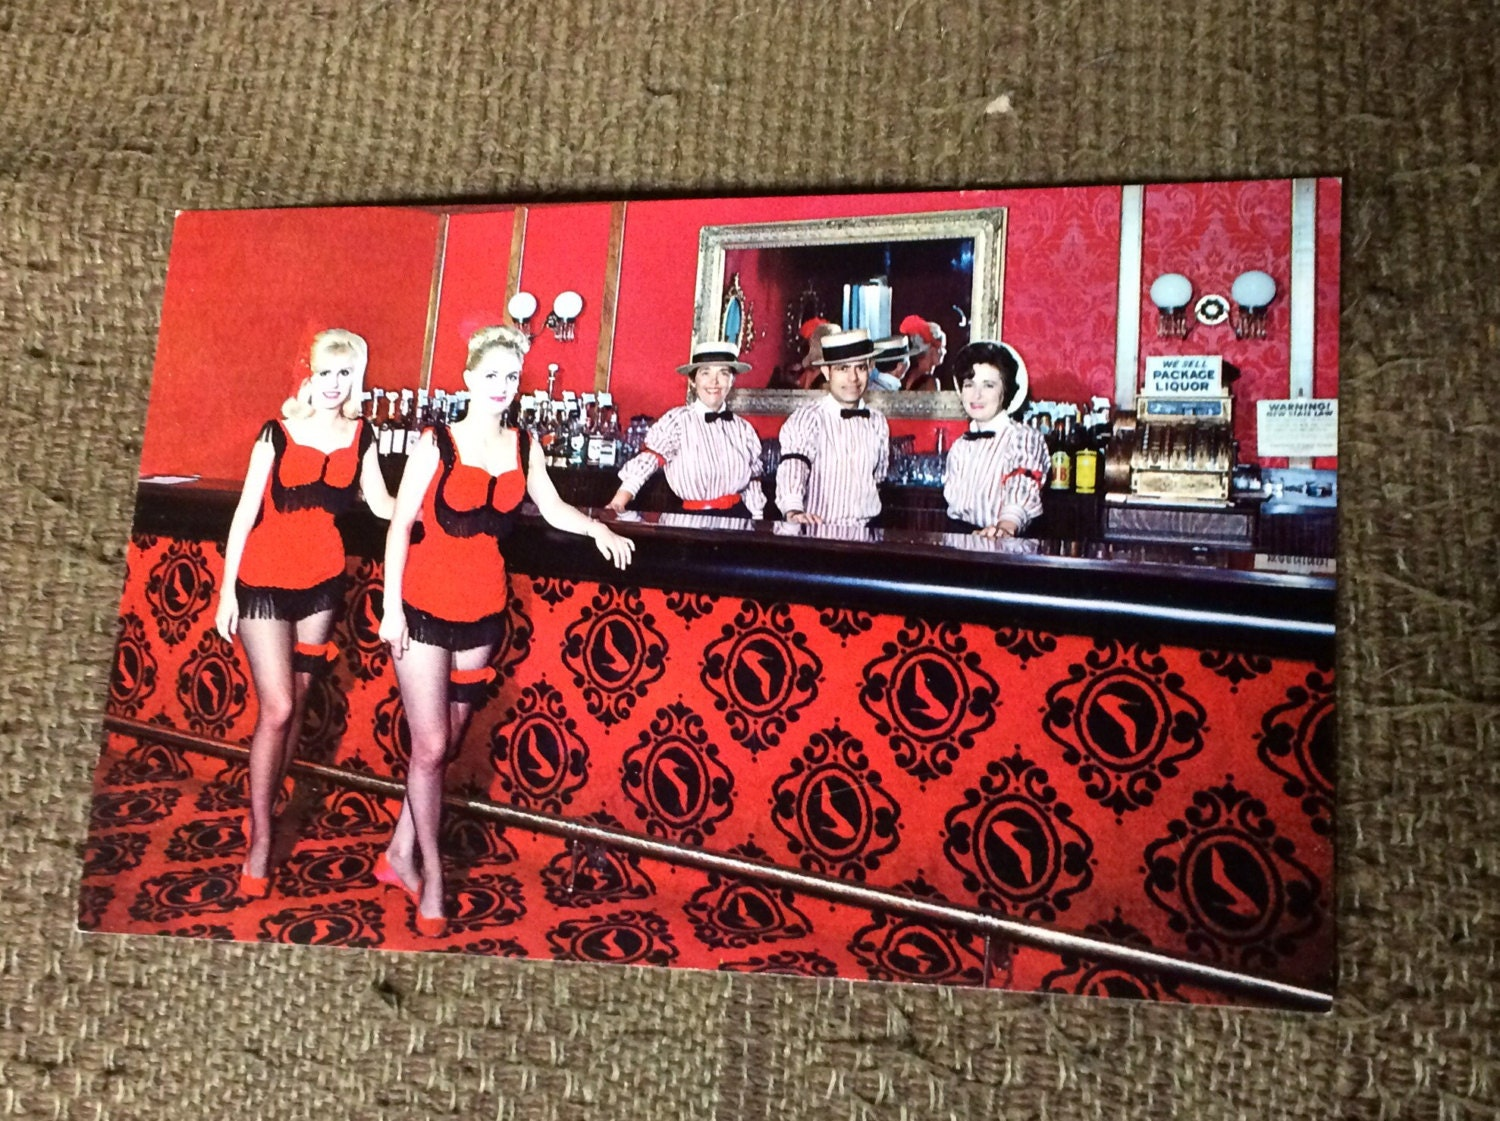 Holiday inn postcard souvenier springfield mo red for Business cards springfield mo